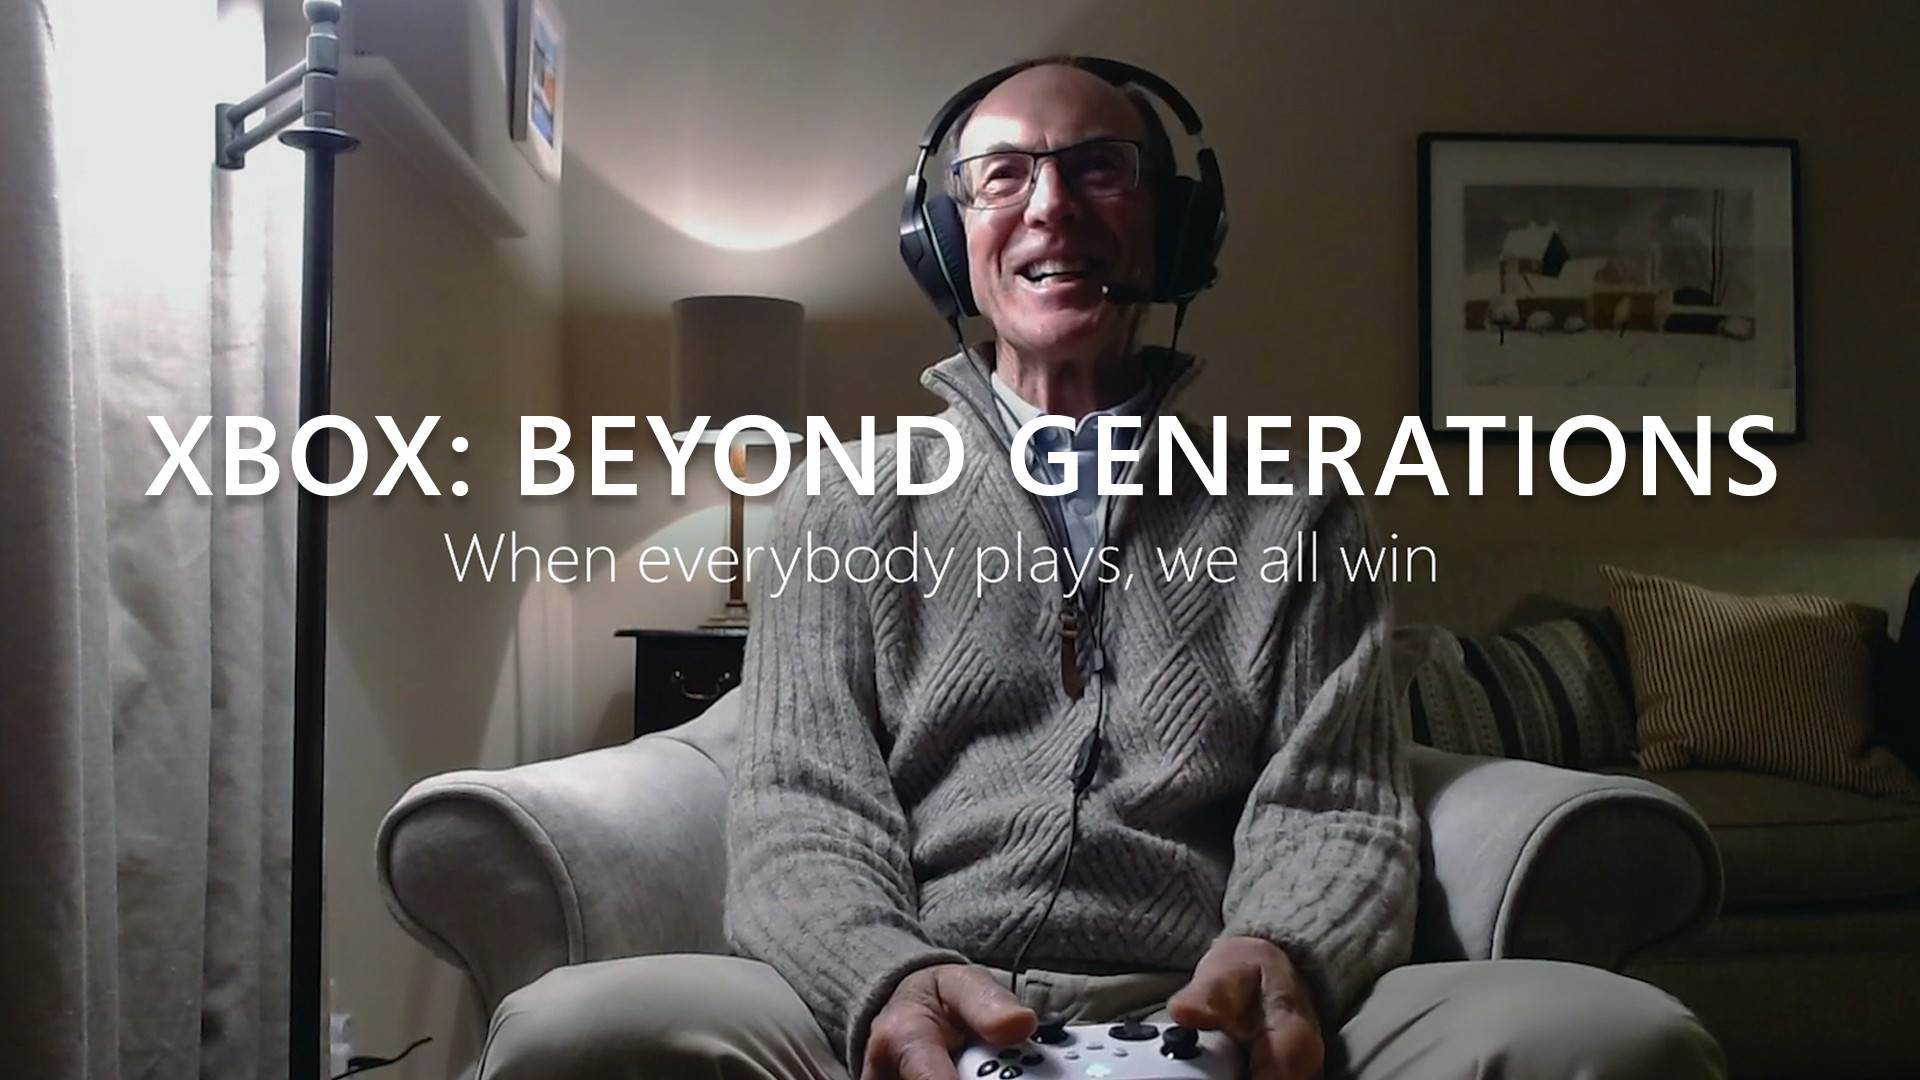 xbox commercial